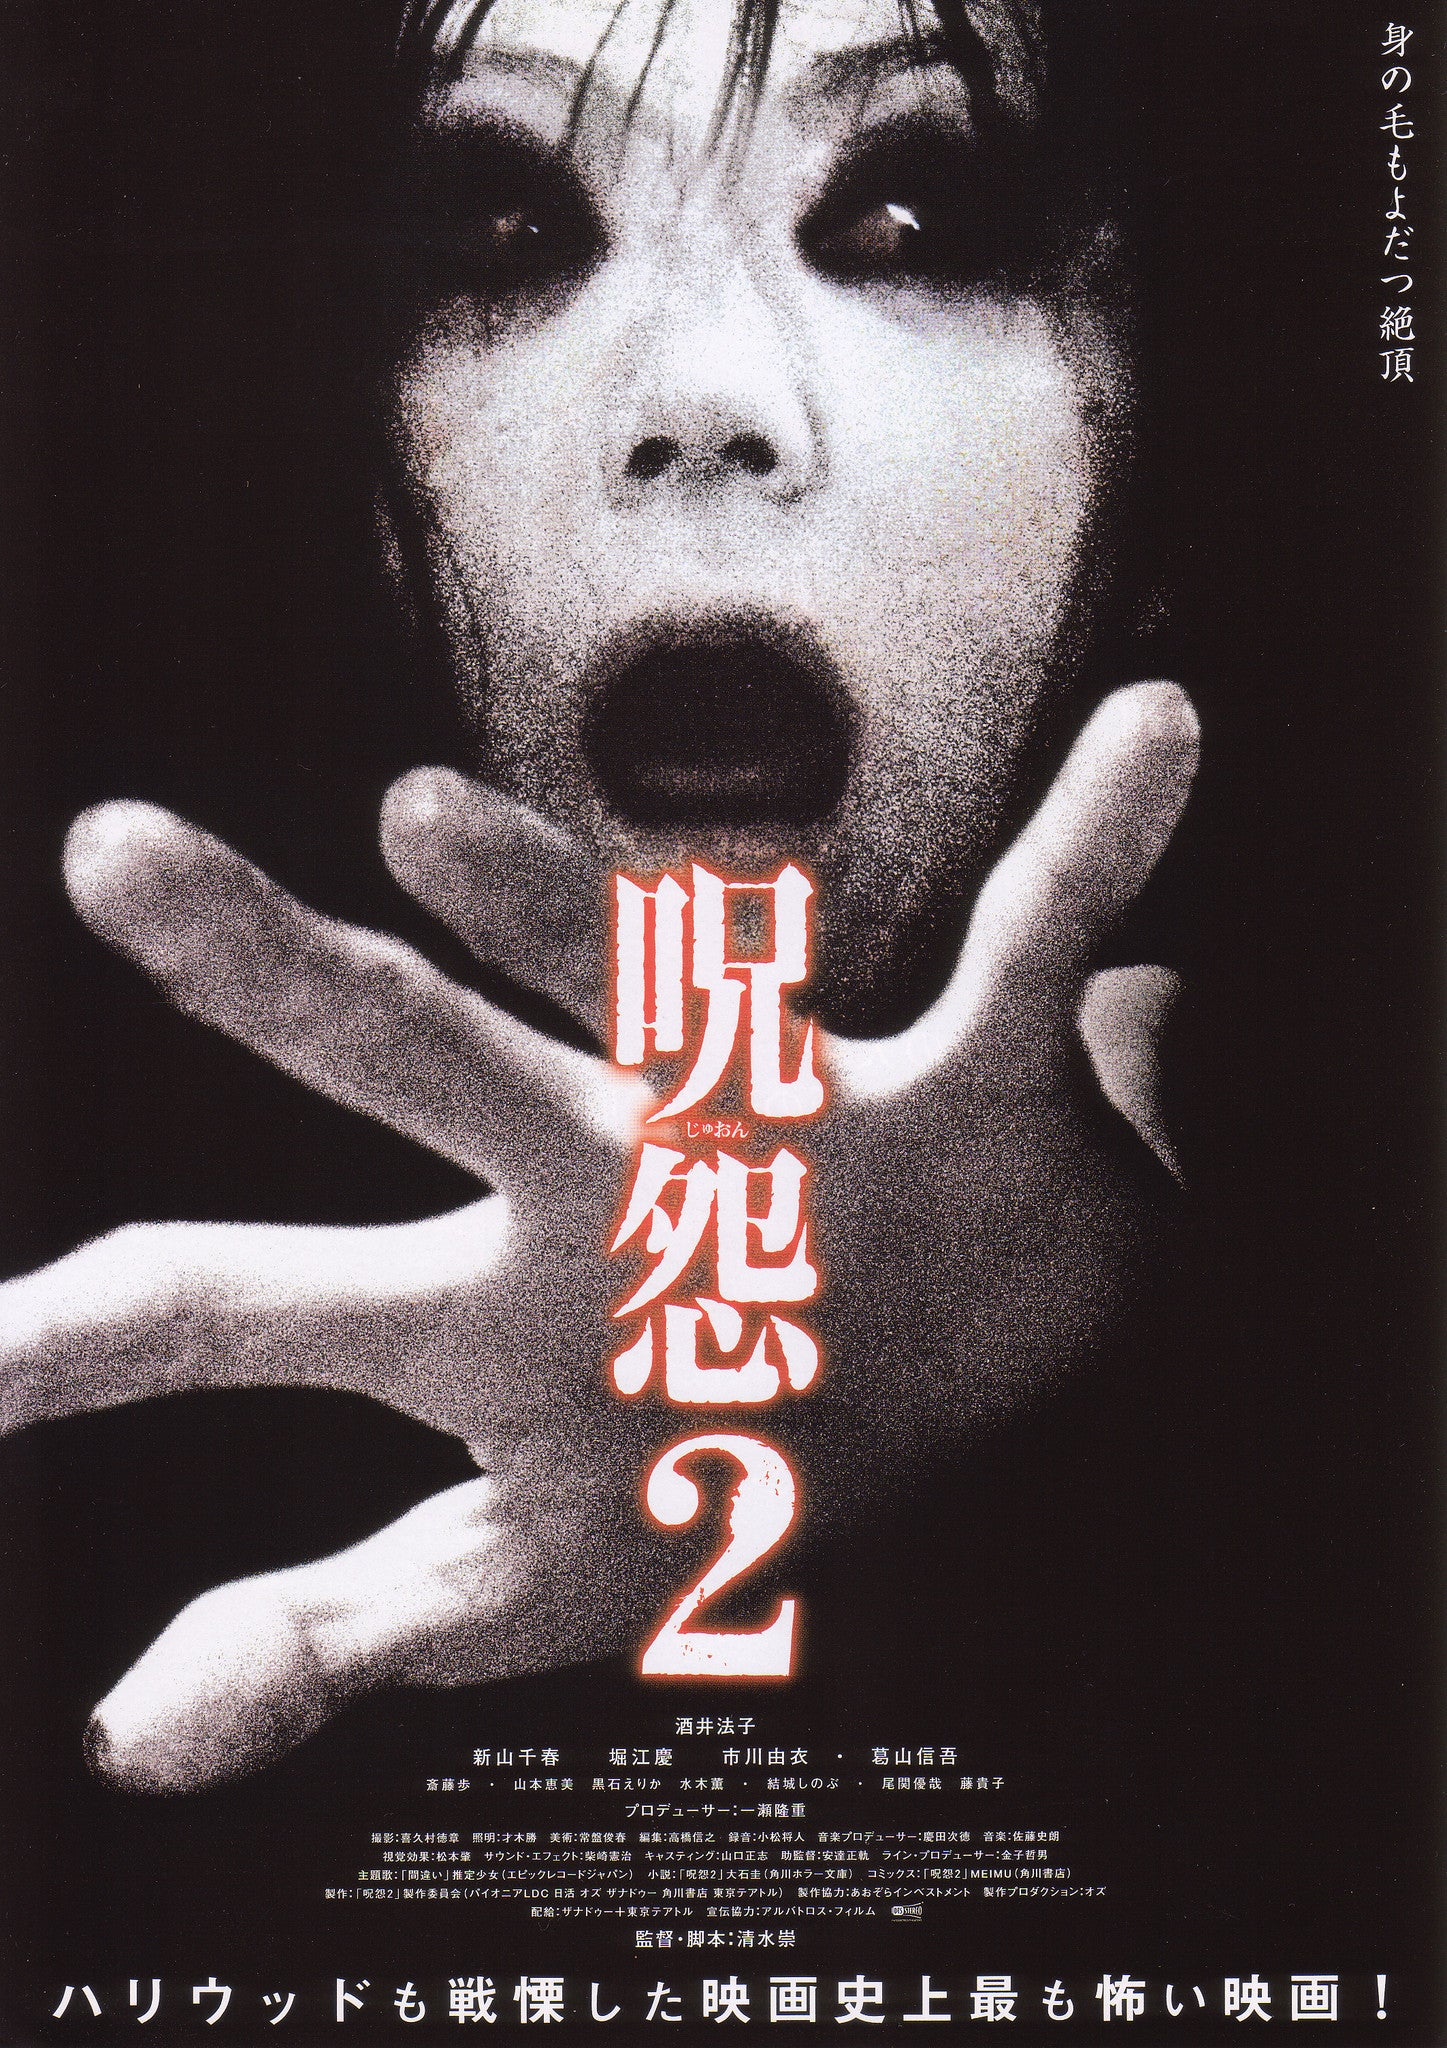 JU-ON: THE GRUDGE 2 - Japanese chirashi